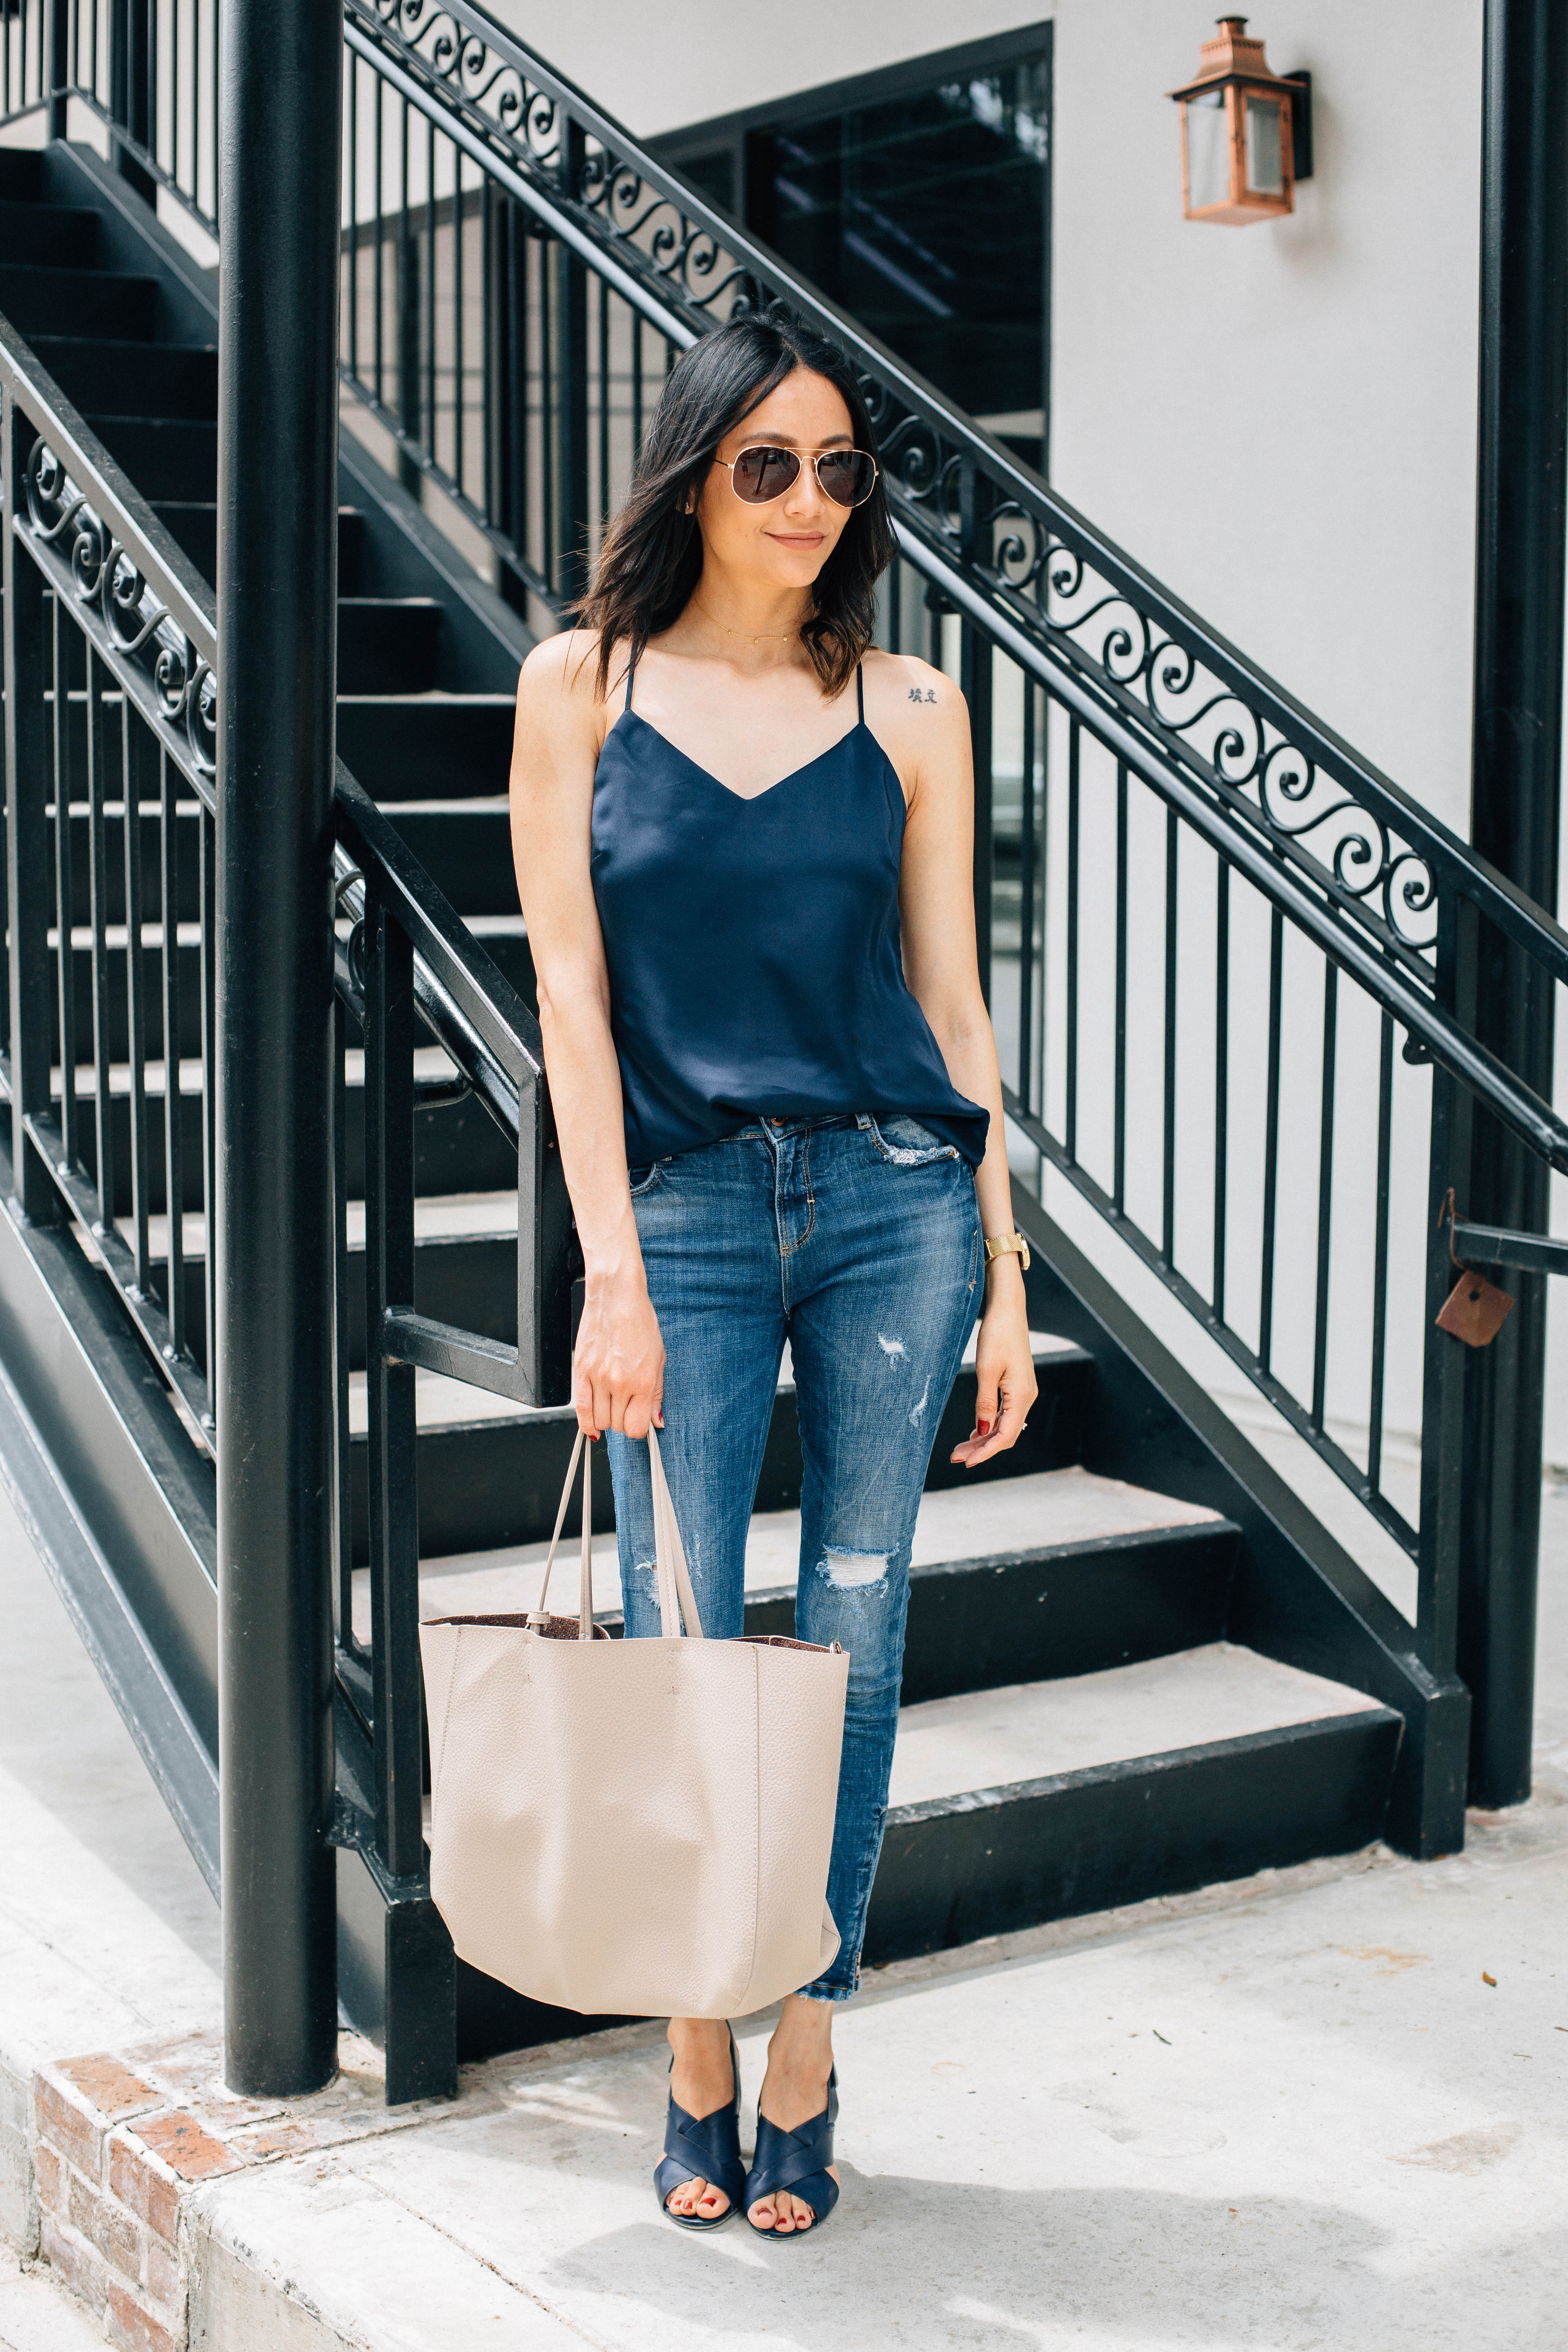 Top 3 brands for great fitting denim